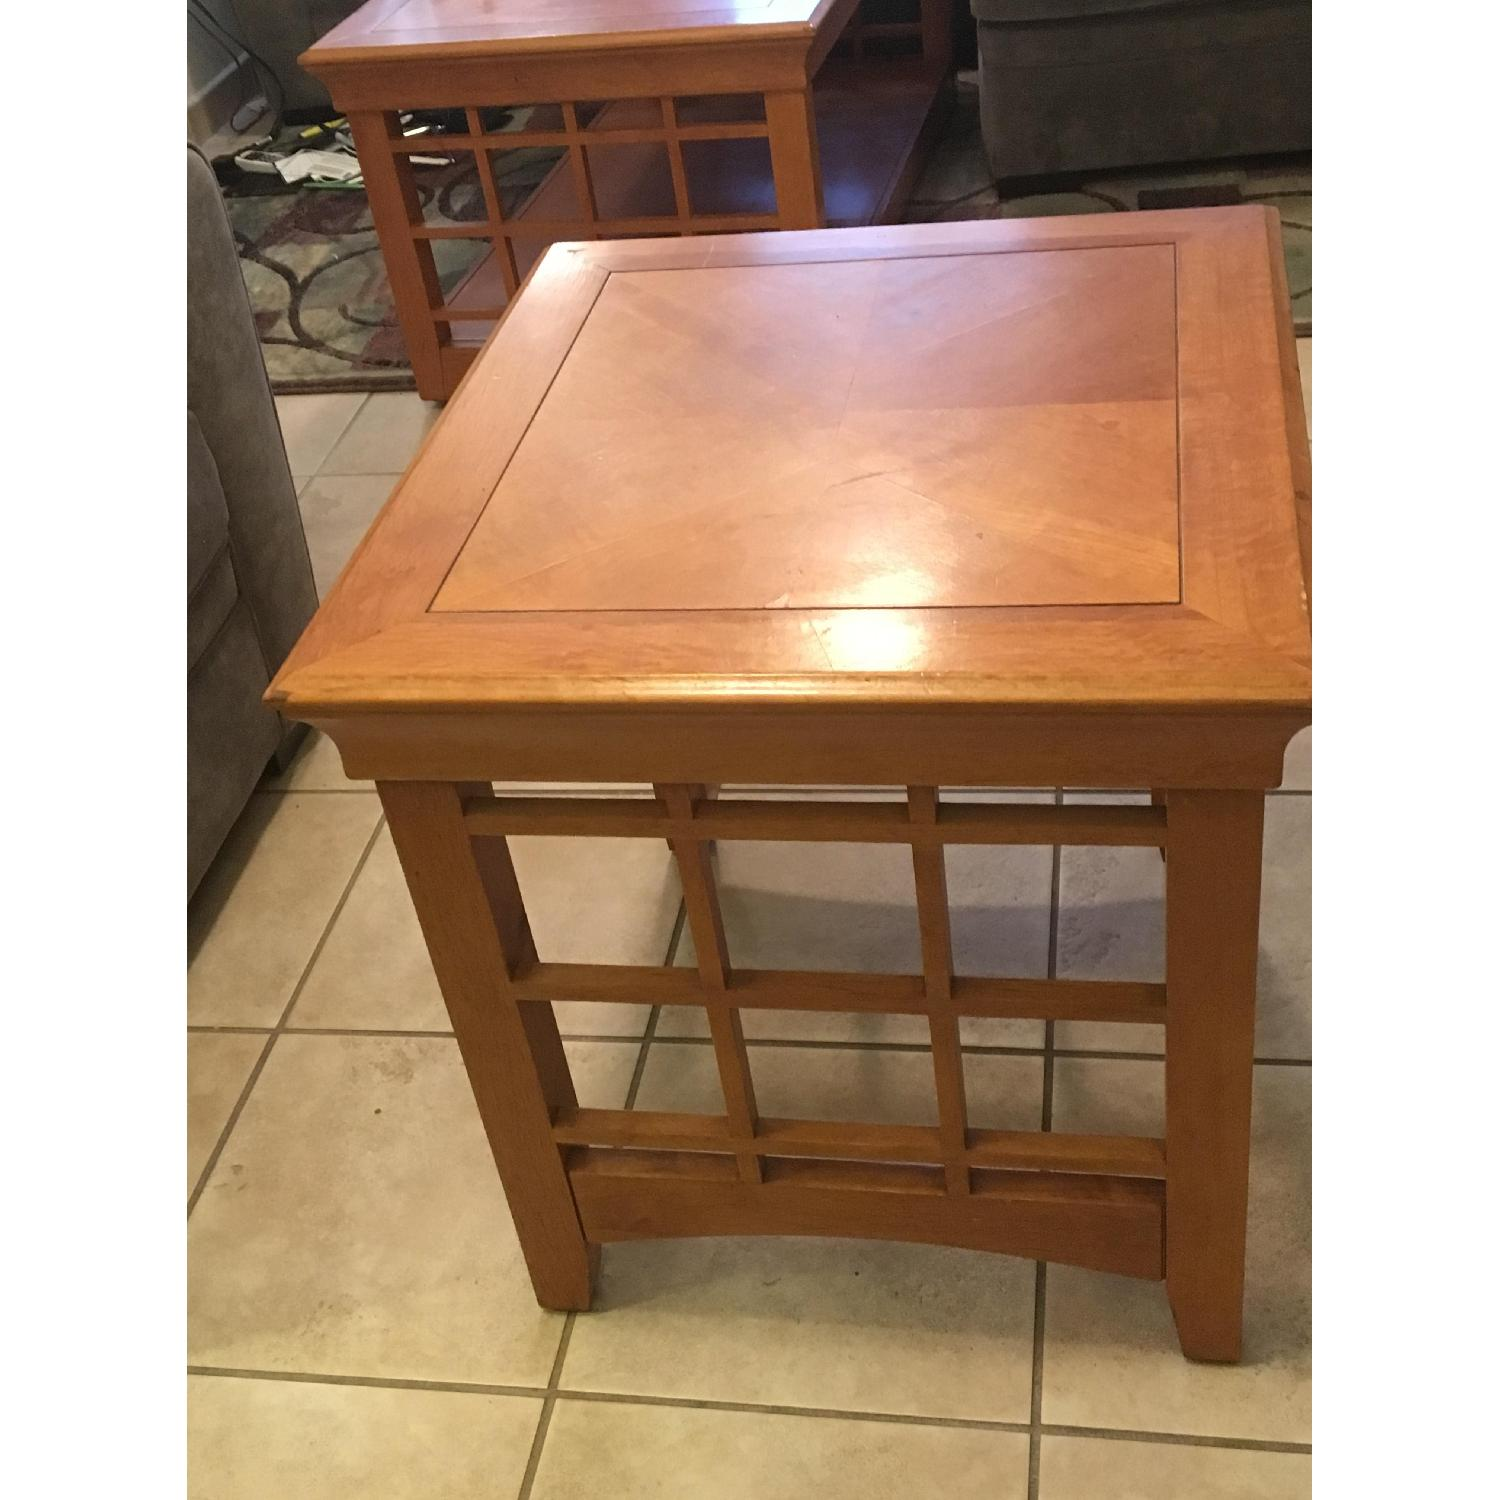 Furniture Options Wooden Coffee Table + 2 Matching End Tables - image-6